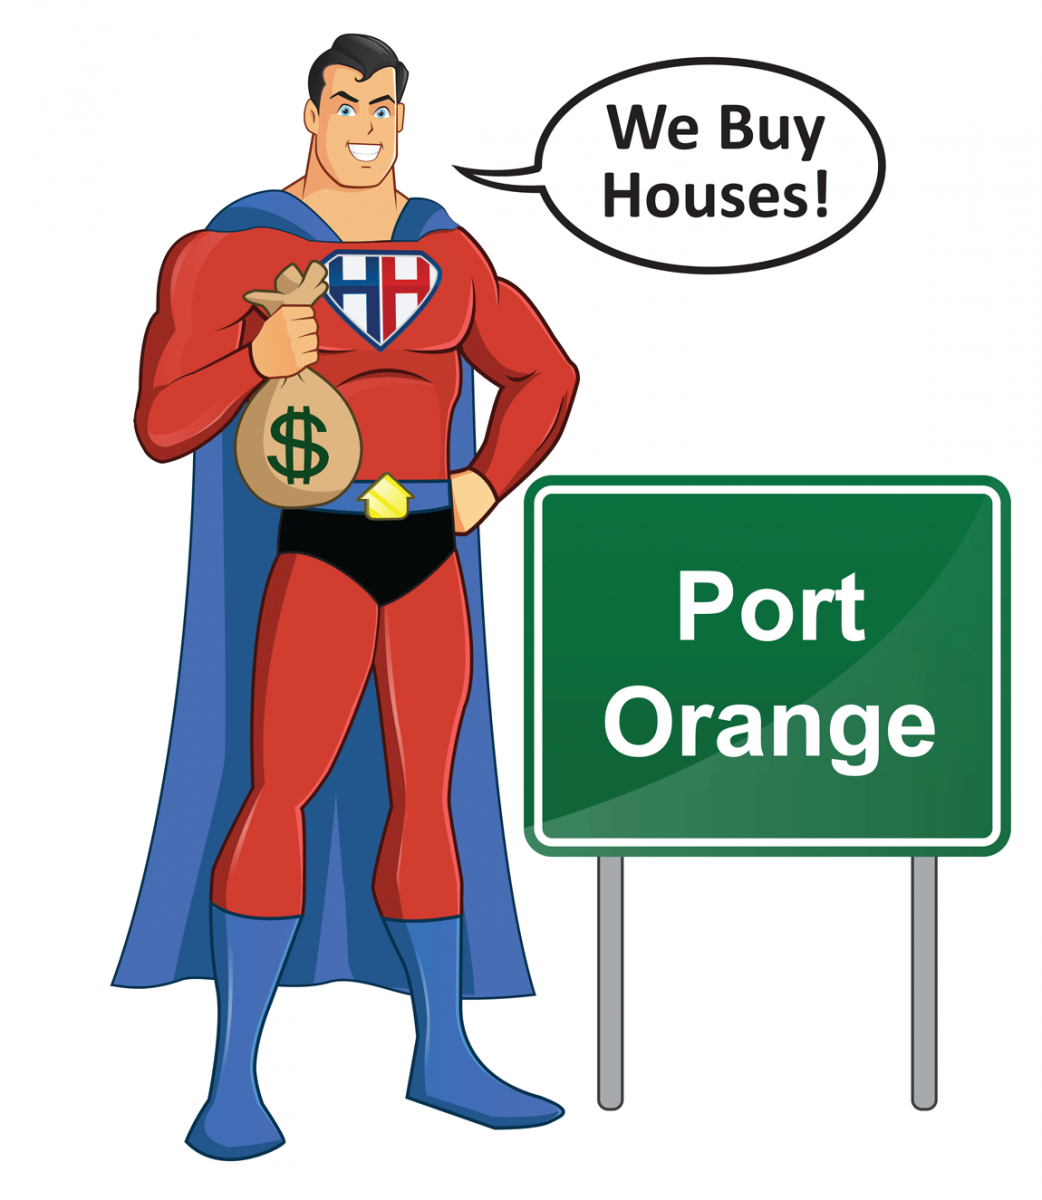 we buy houses in port orange